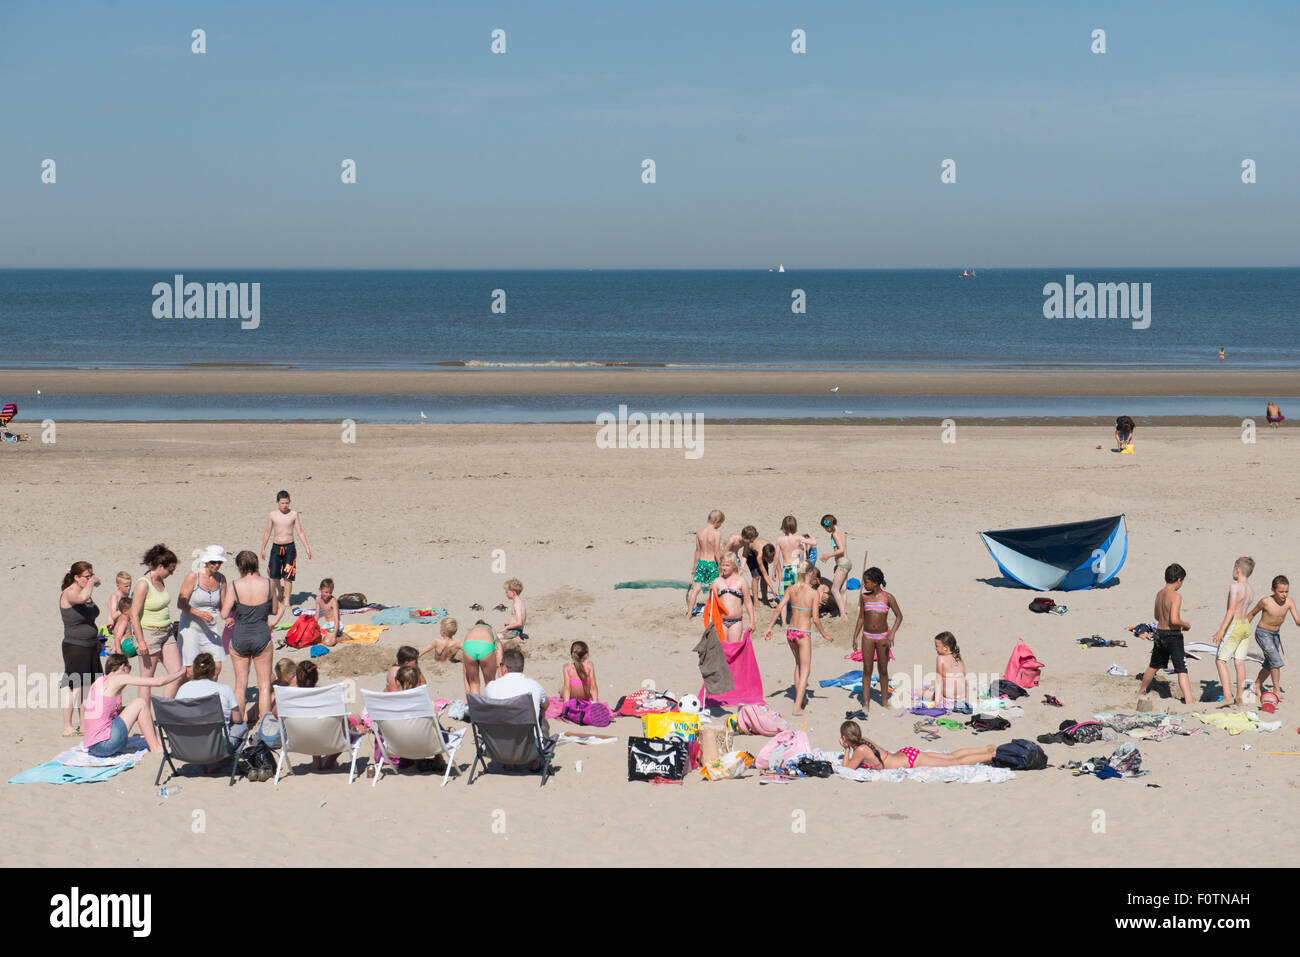 Holidaymakers on the beach, Bergen, Netherlands - Stock Image